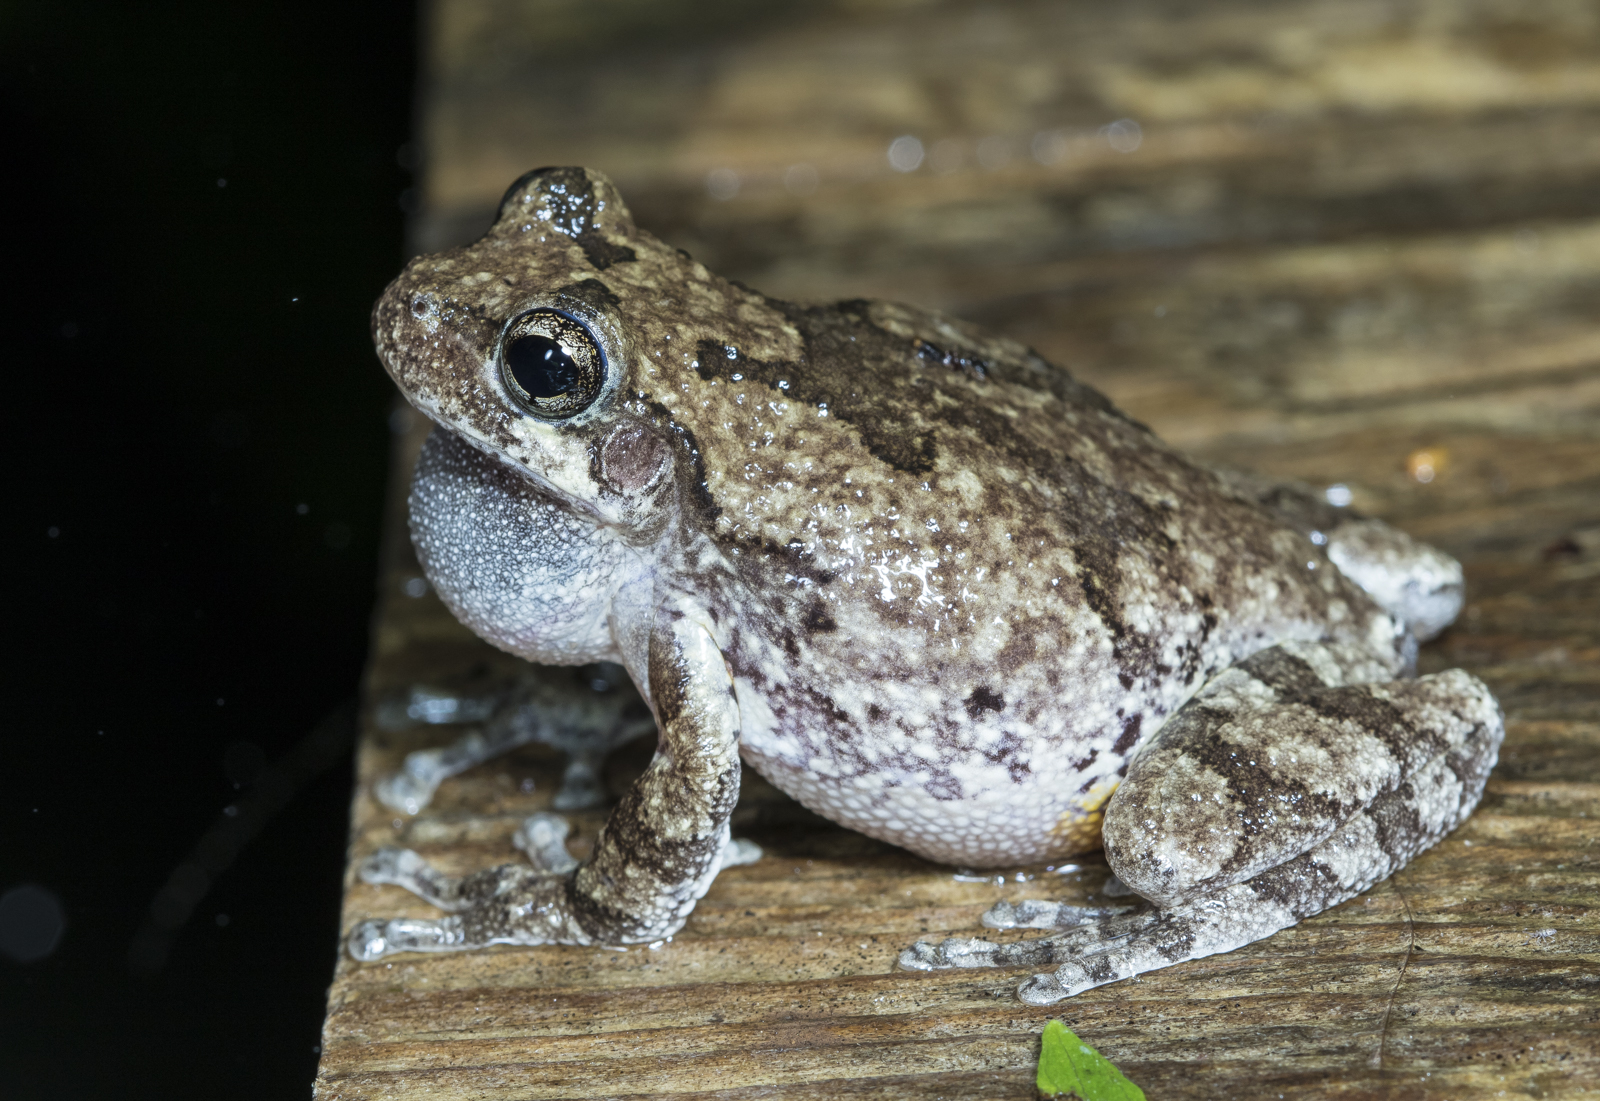 Cope's Gray Treefrog on walkway